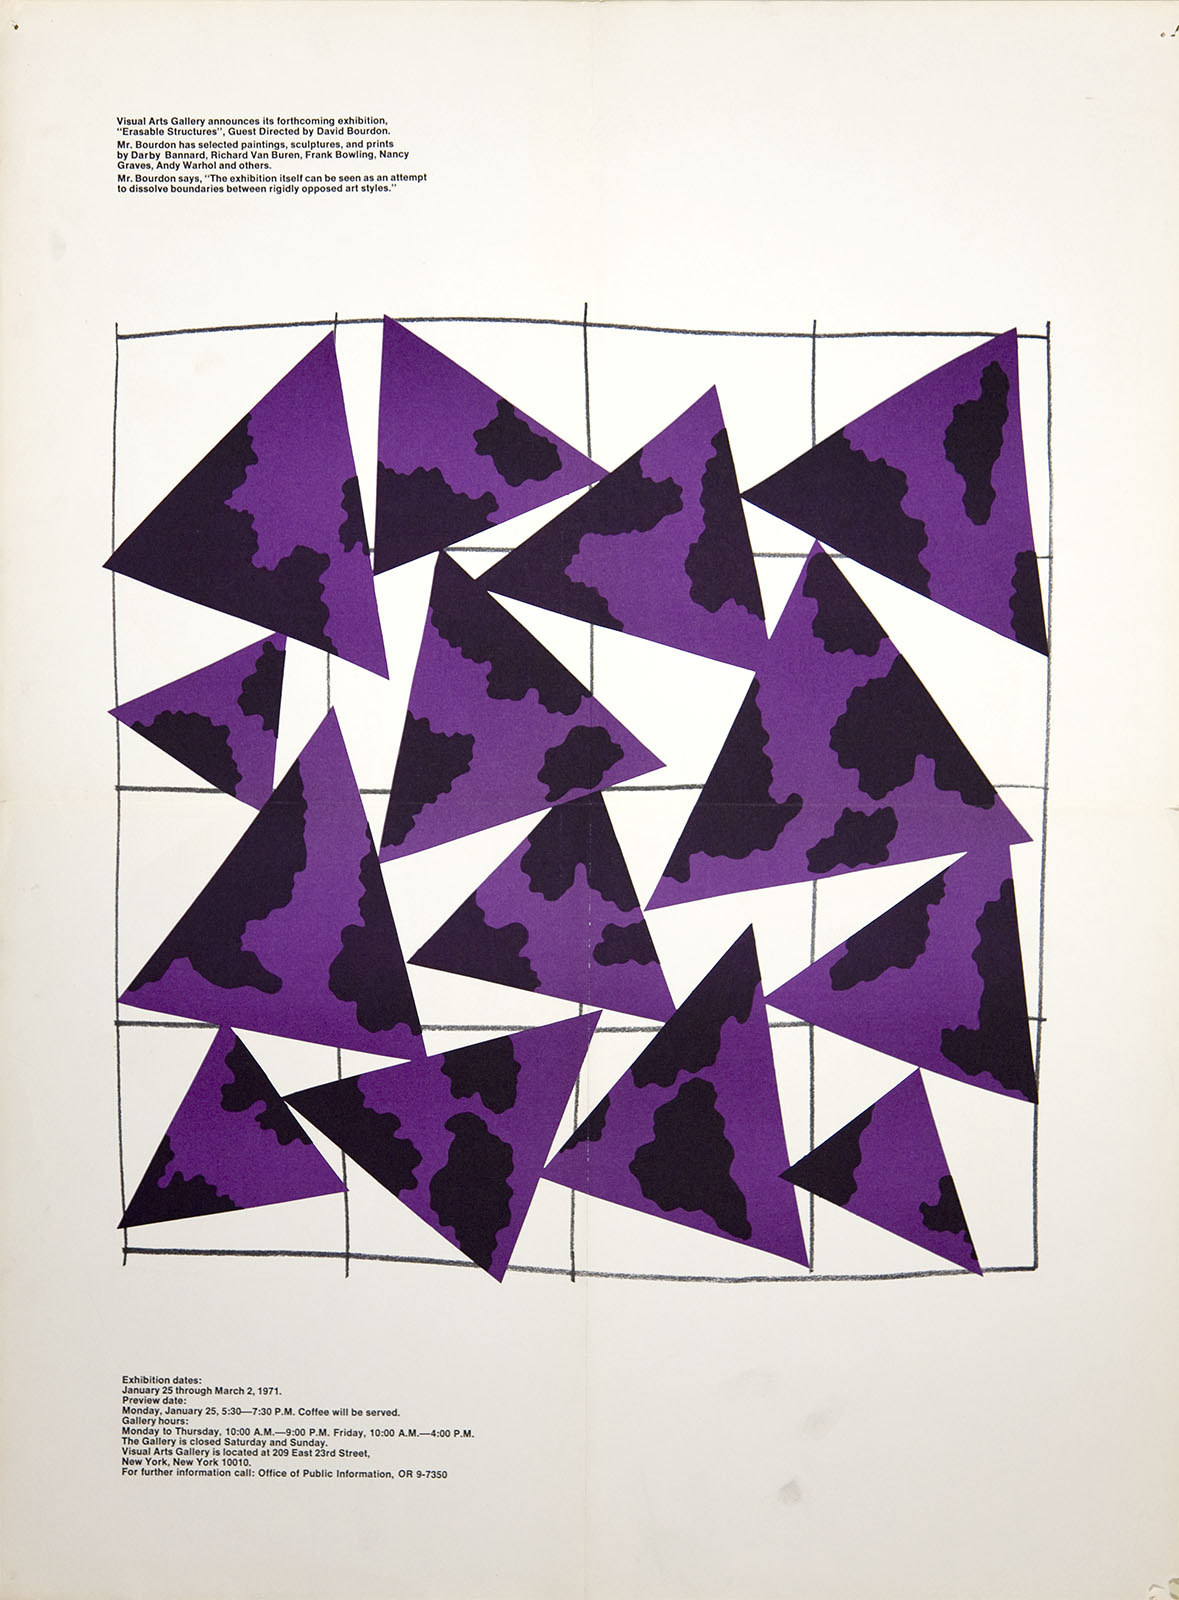 Exhibition poster with a collection of purple triangles with dark splotches on a white background, mounted askew on a rough, hand-drawn grid.